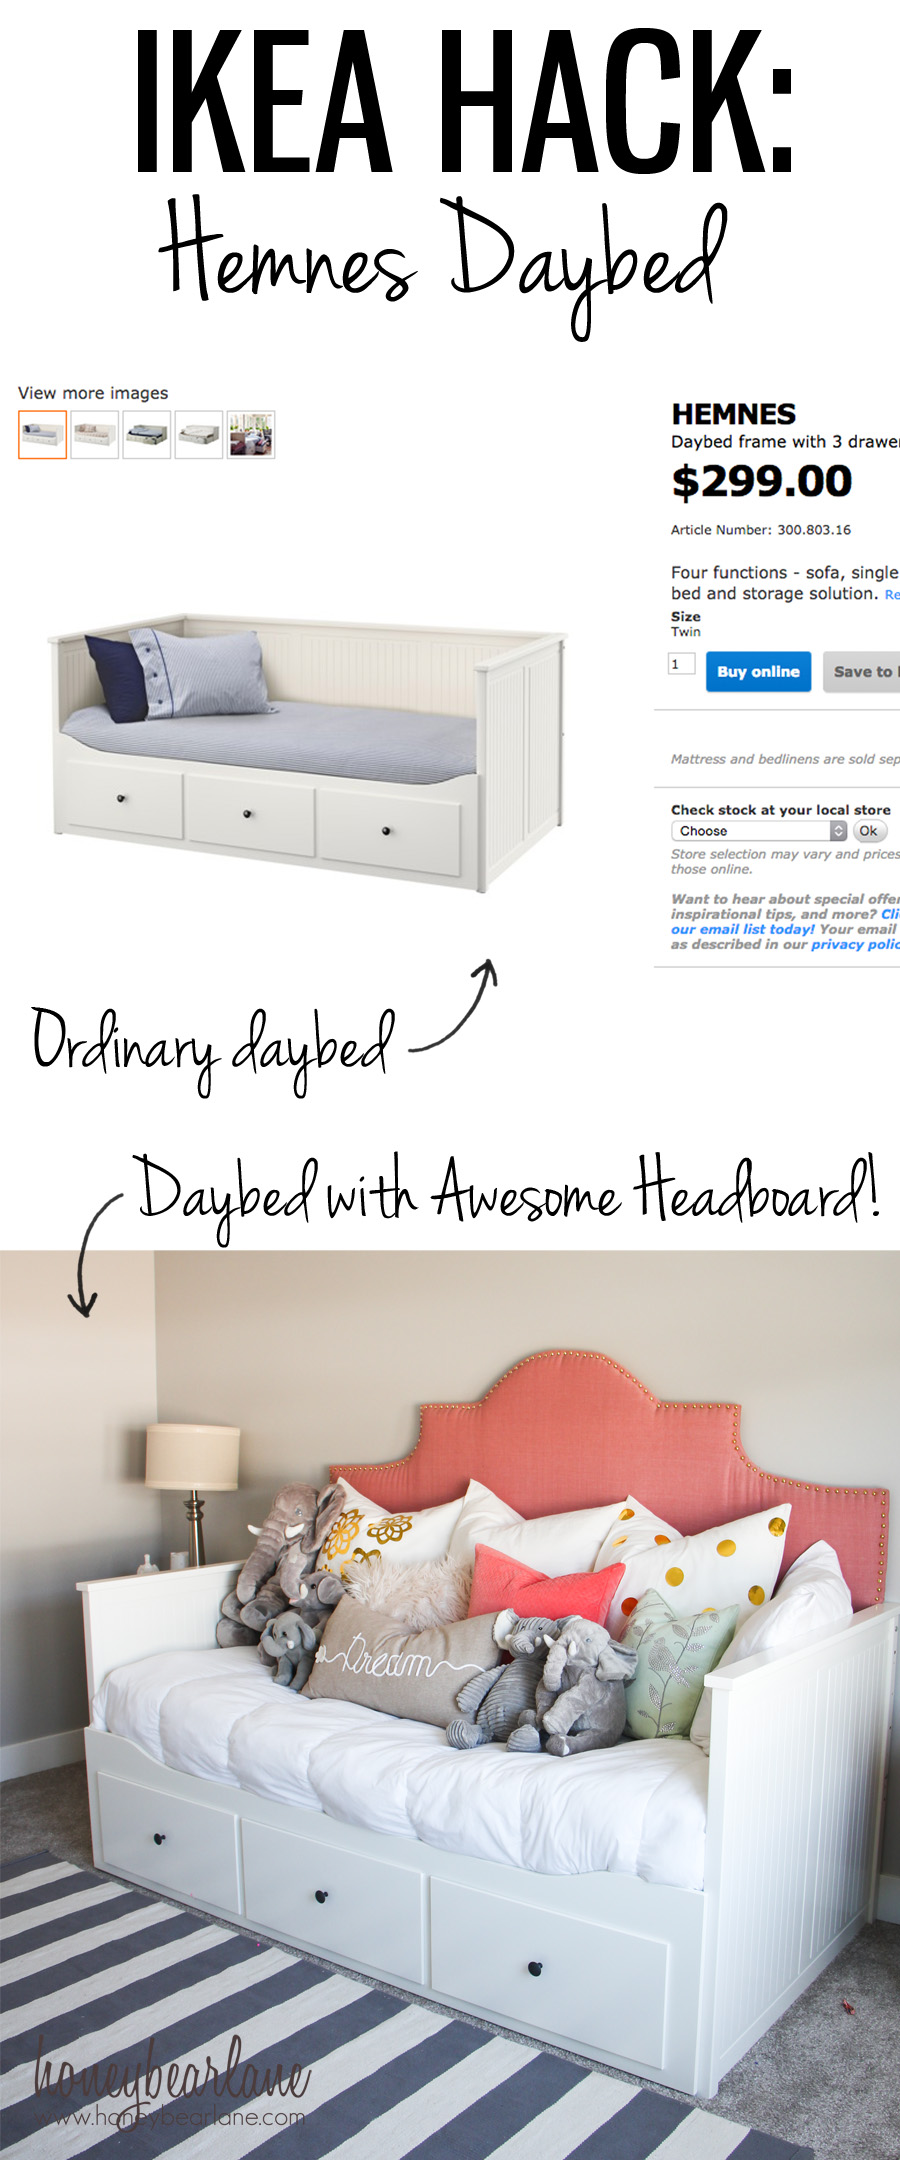 Hemnes daybed ikea hack honeybear lane Ikea hacking